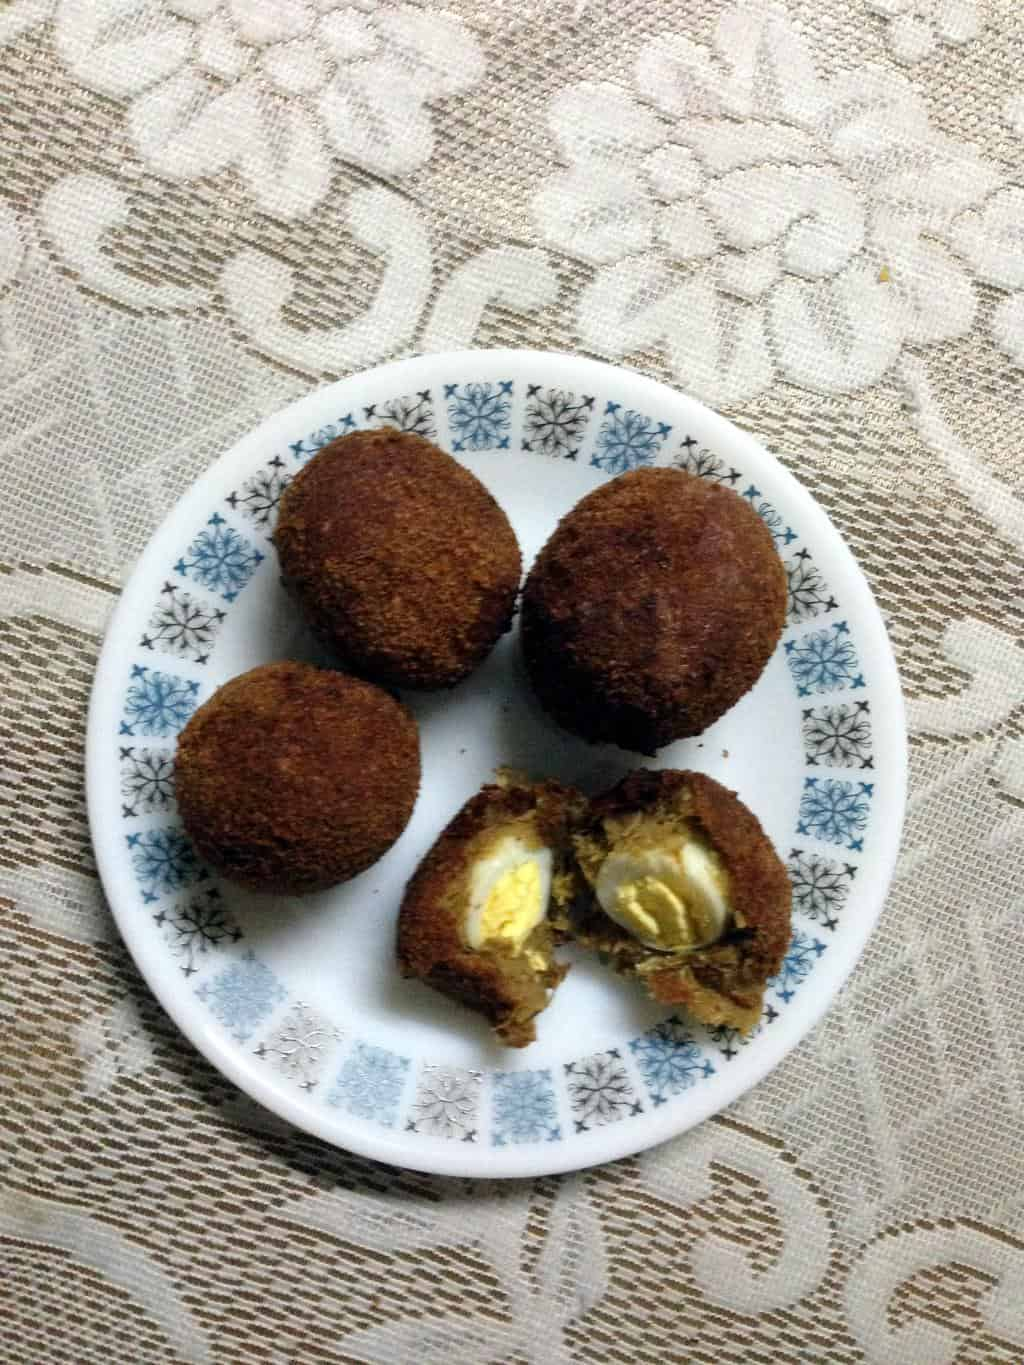 Scotch Eggs (Eggs wrapped in Meat mix)